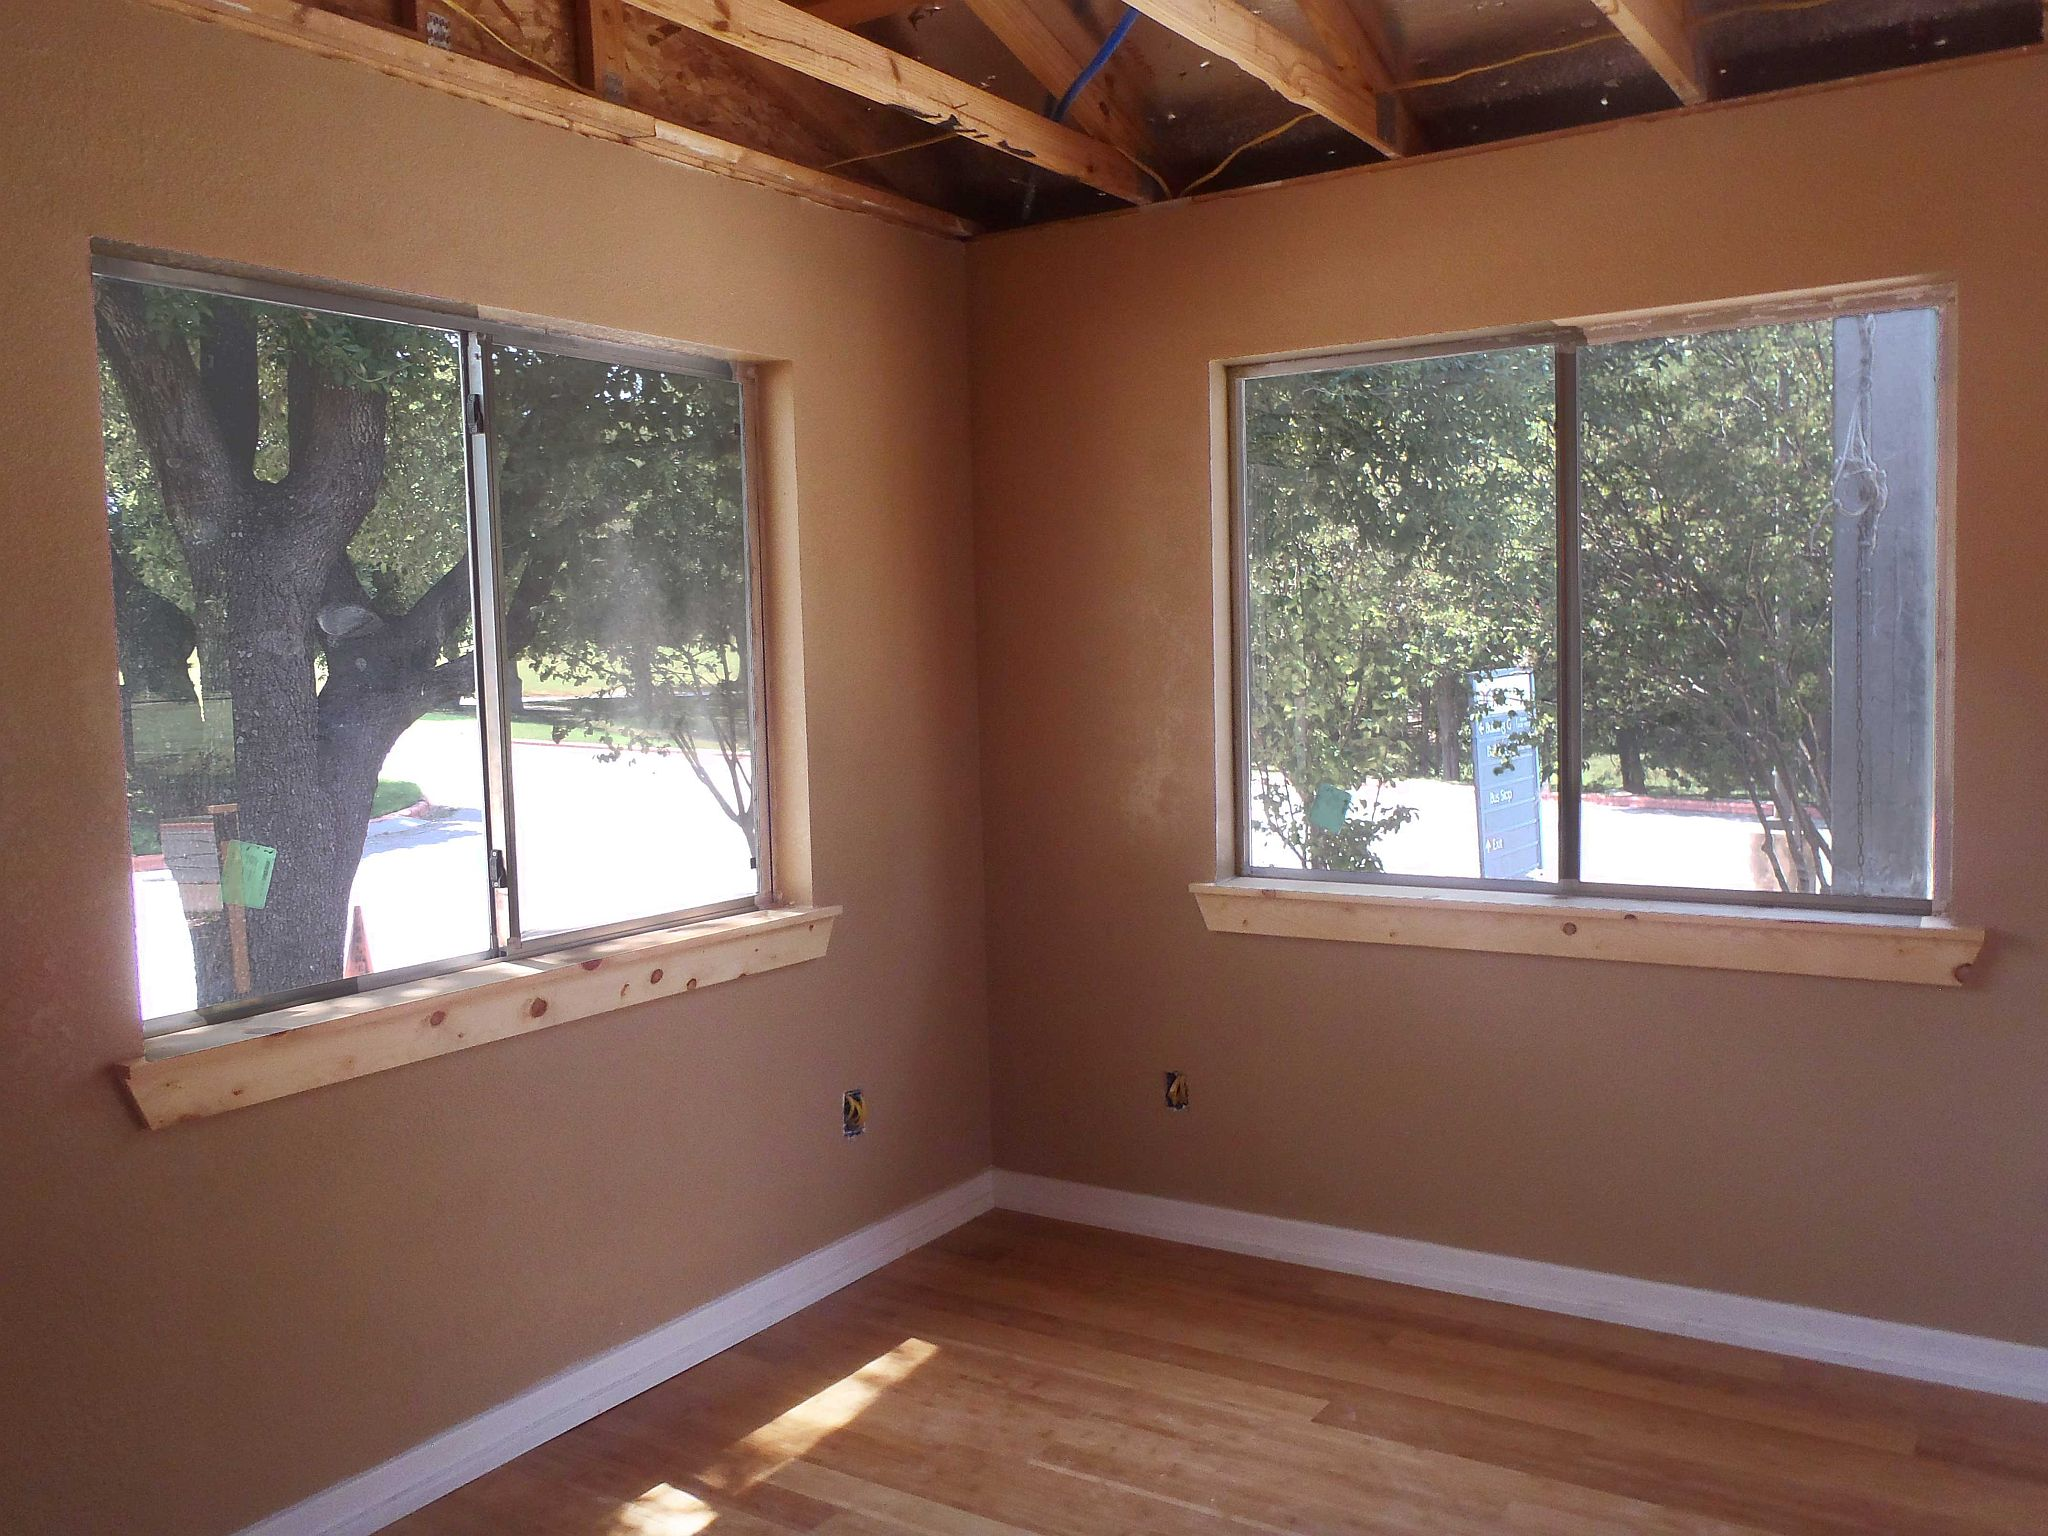 finished building interior windows